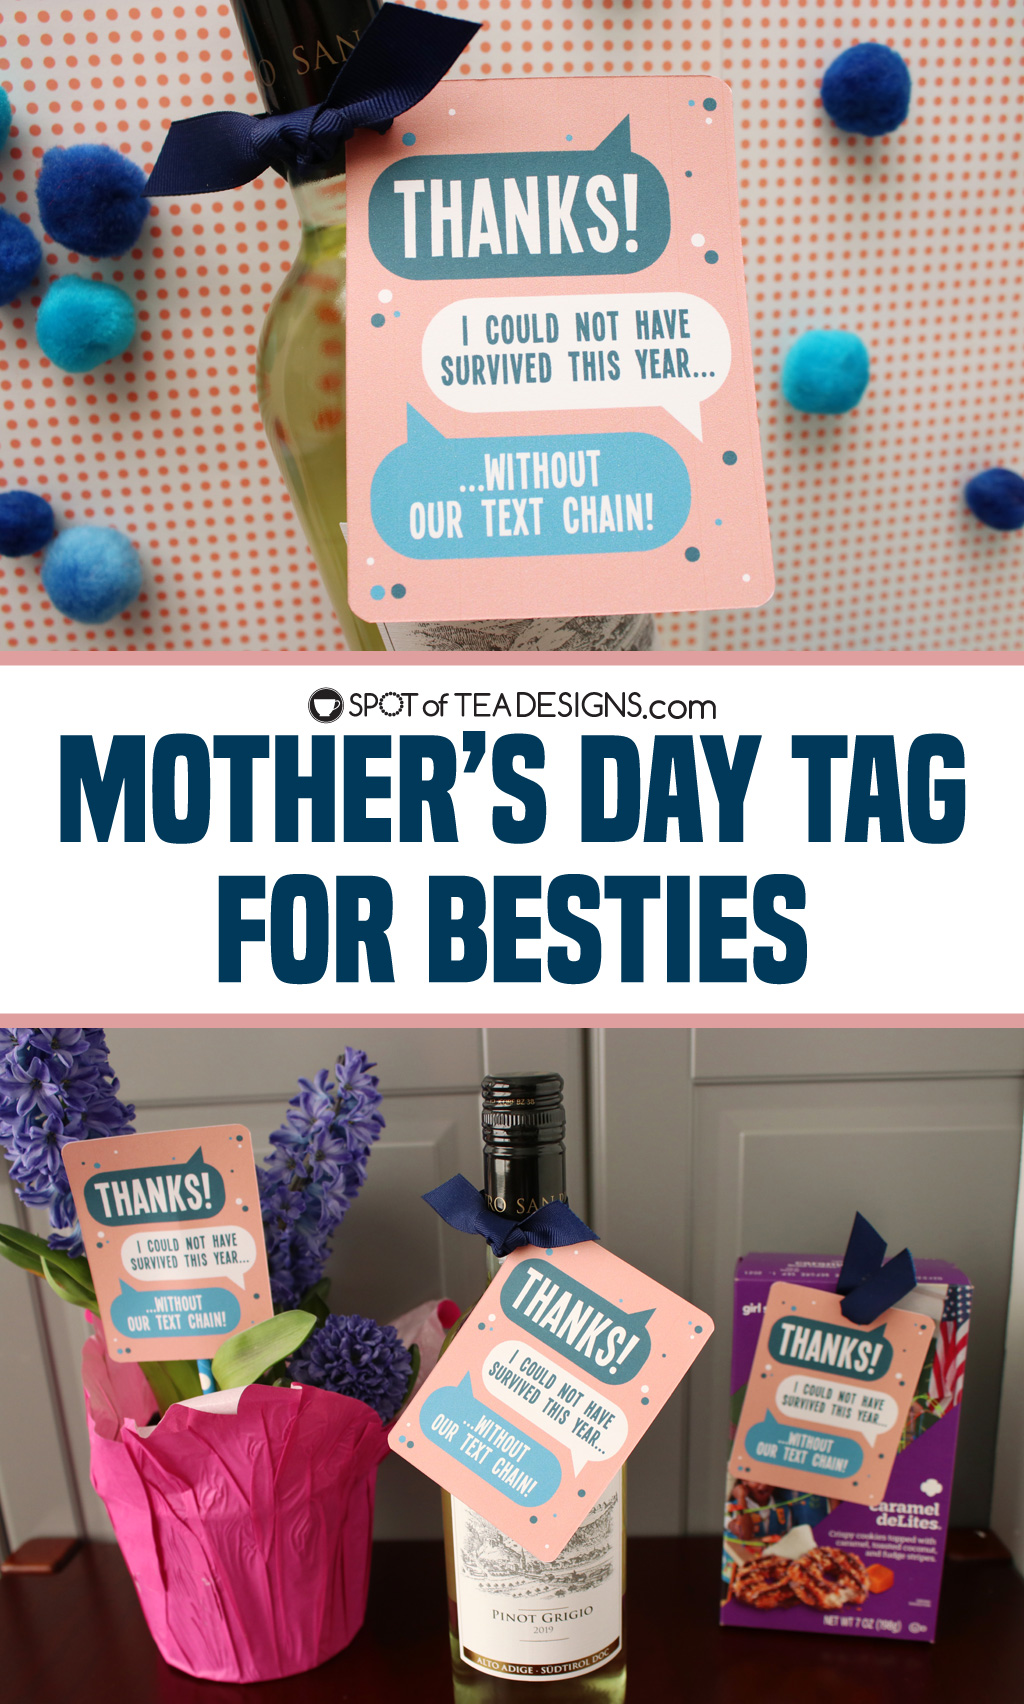 Mother's Day tag for besties | spotofteadesigns.com